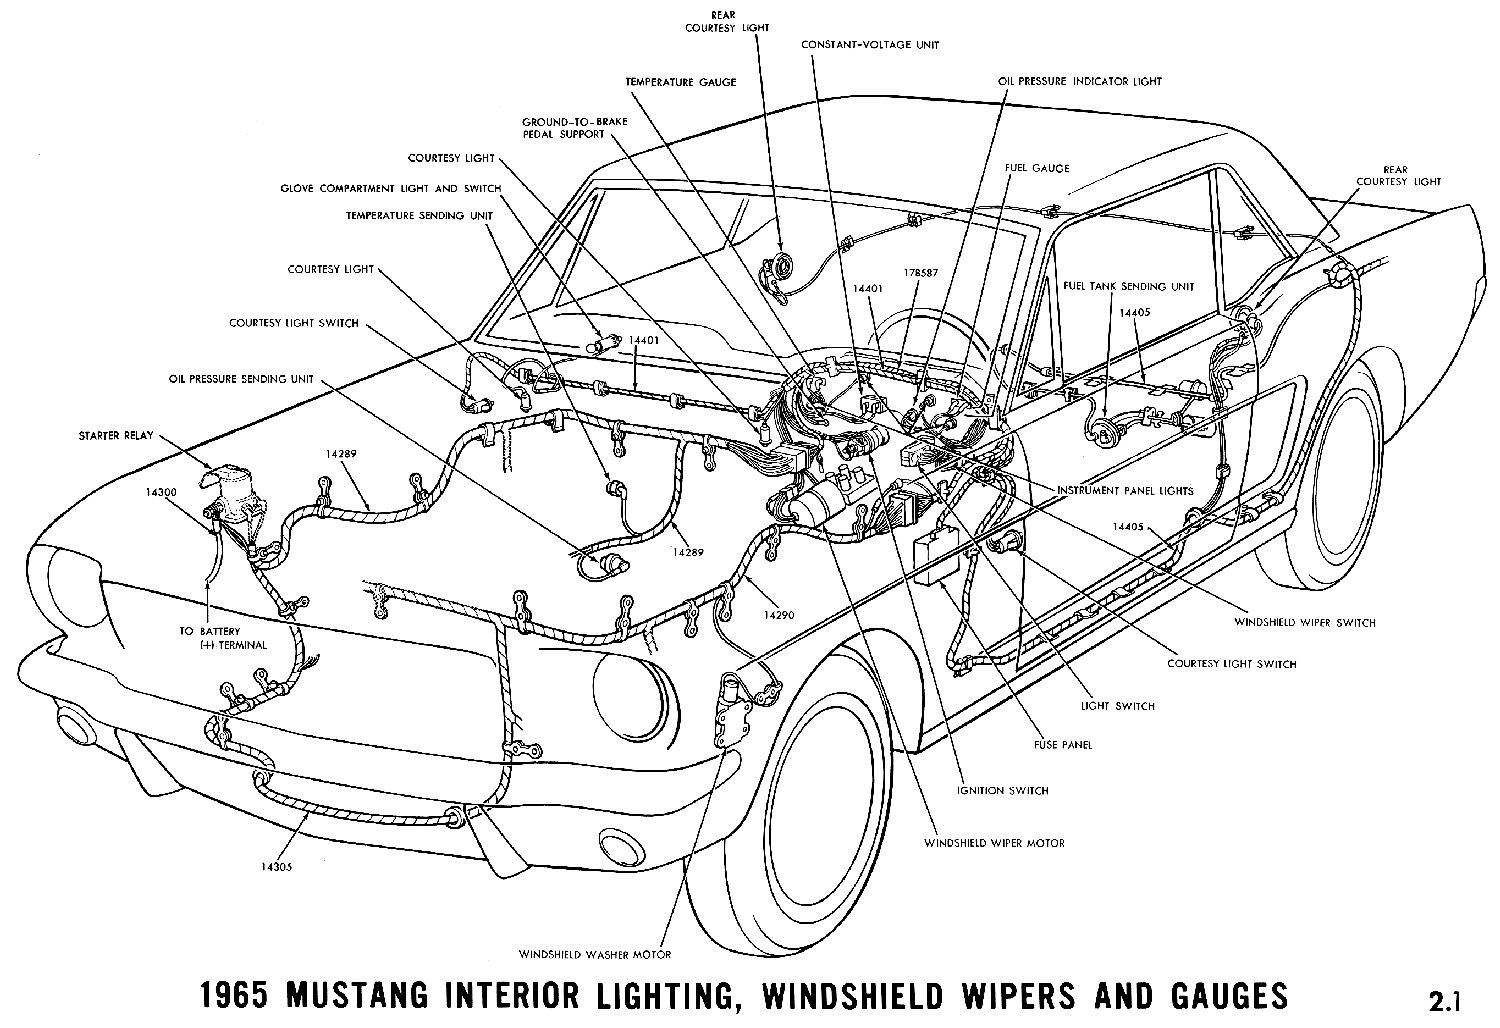 hight resolution of 1965 mustang wiring diagrams average joe restoration mix 1965 mustang interior lights windshield wiper and 65 mustang alternator